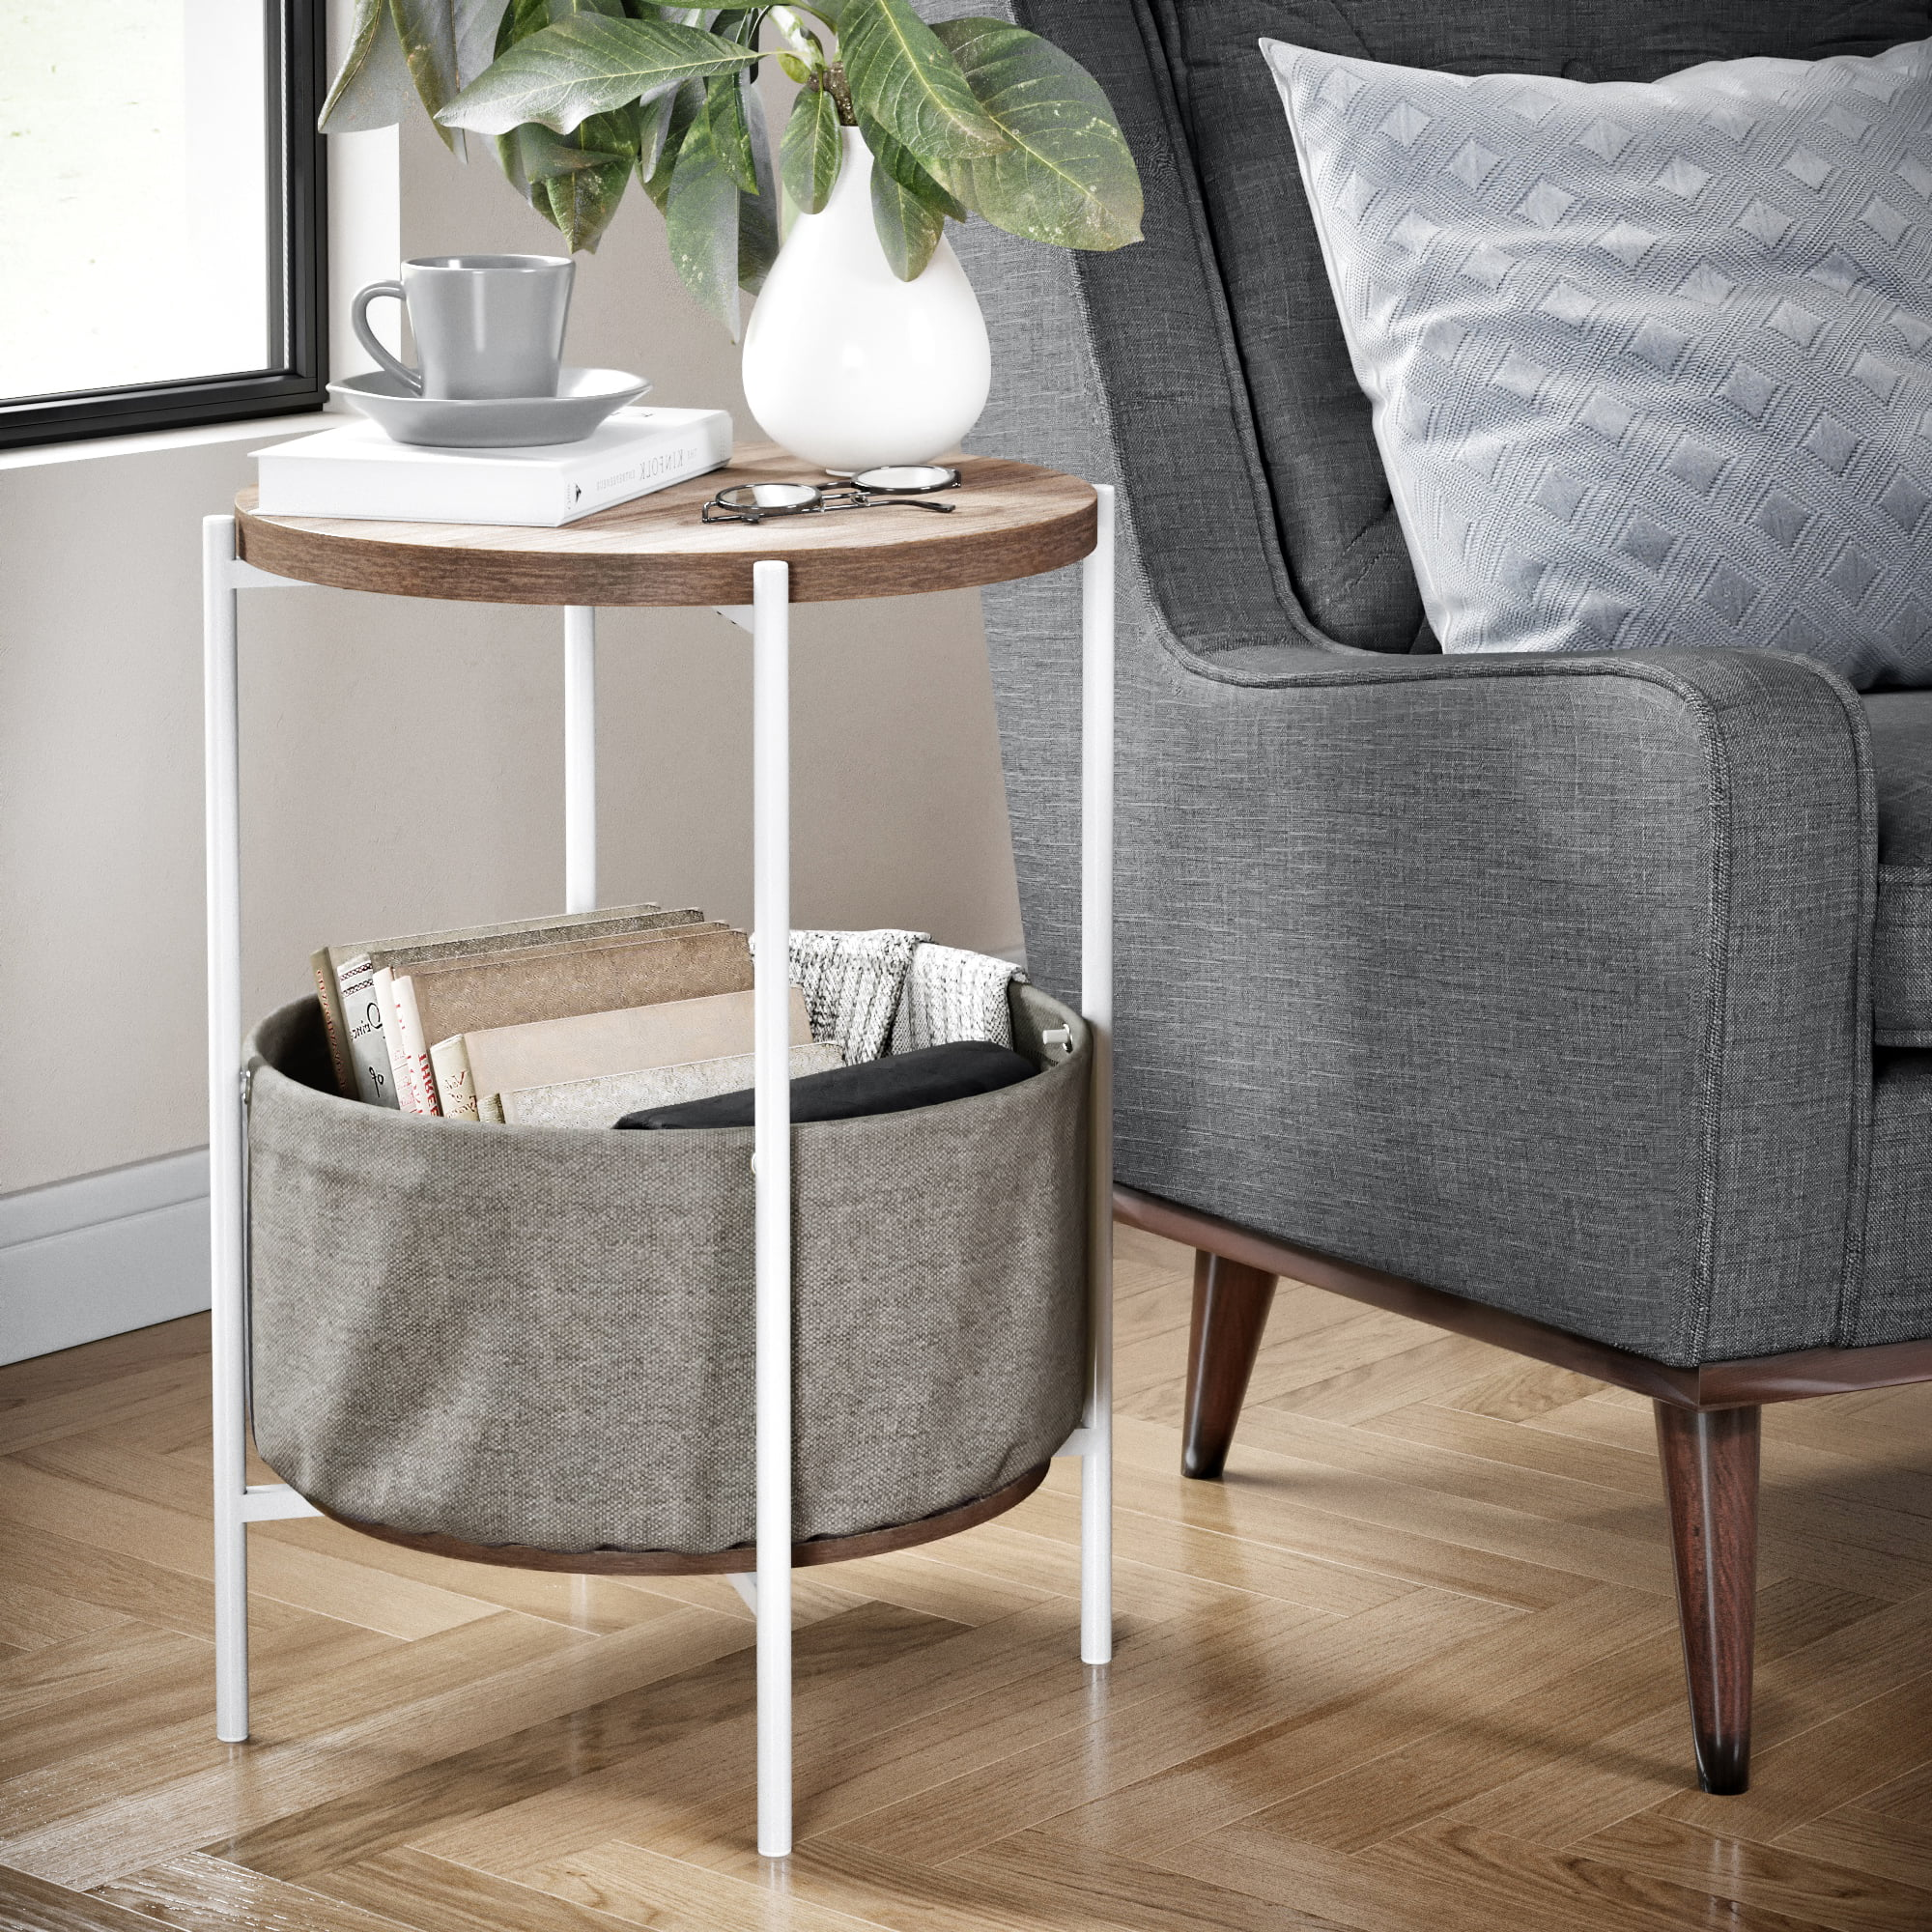 Picture of: Nathan James Oraa Wood Side Table With Beige Fabric Storage Light Brown Top White Metal Base Walmart Com Walmart Com